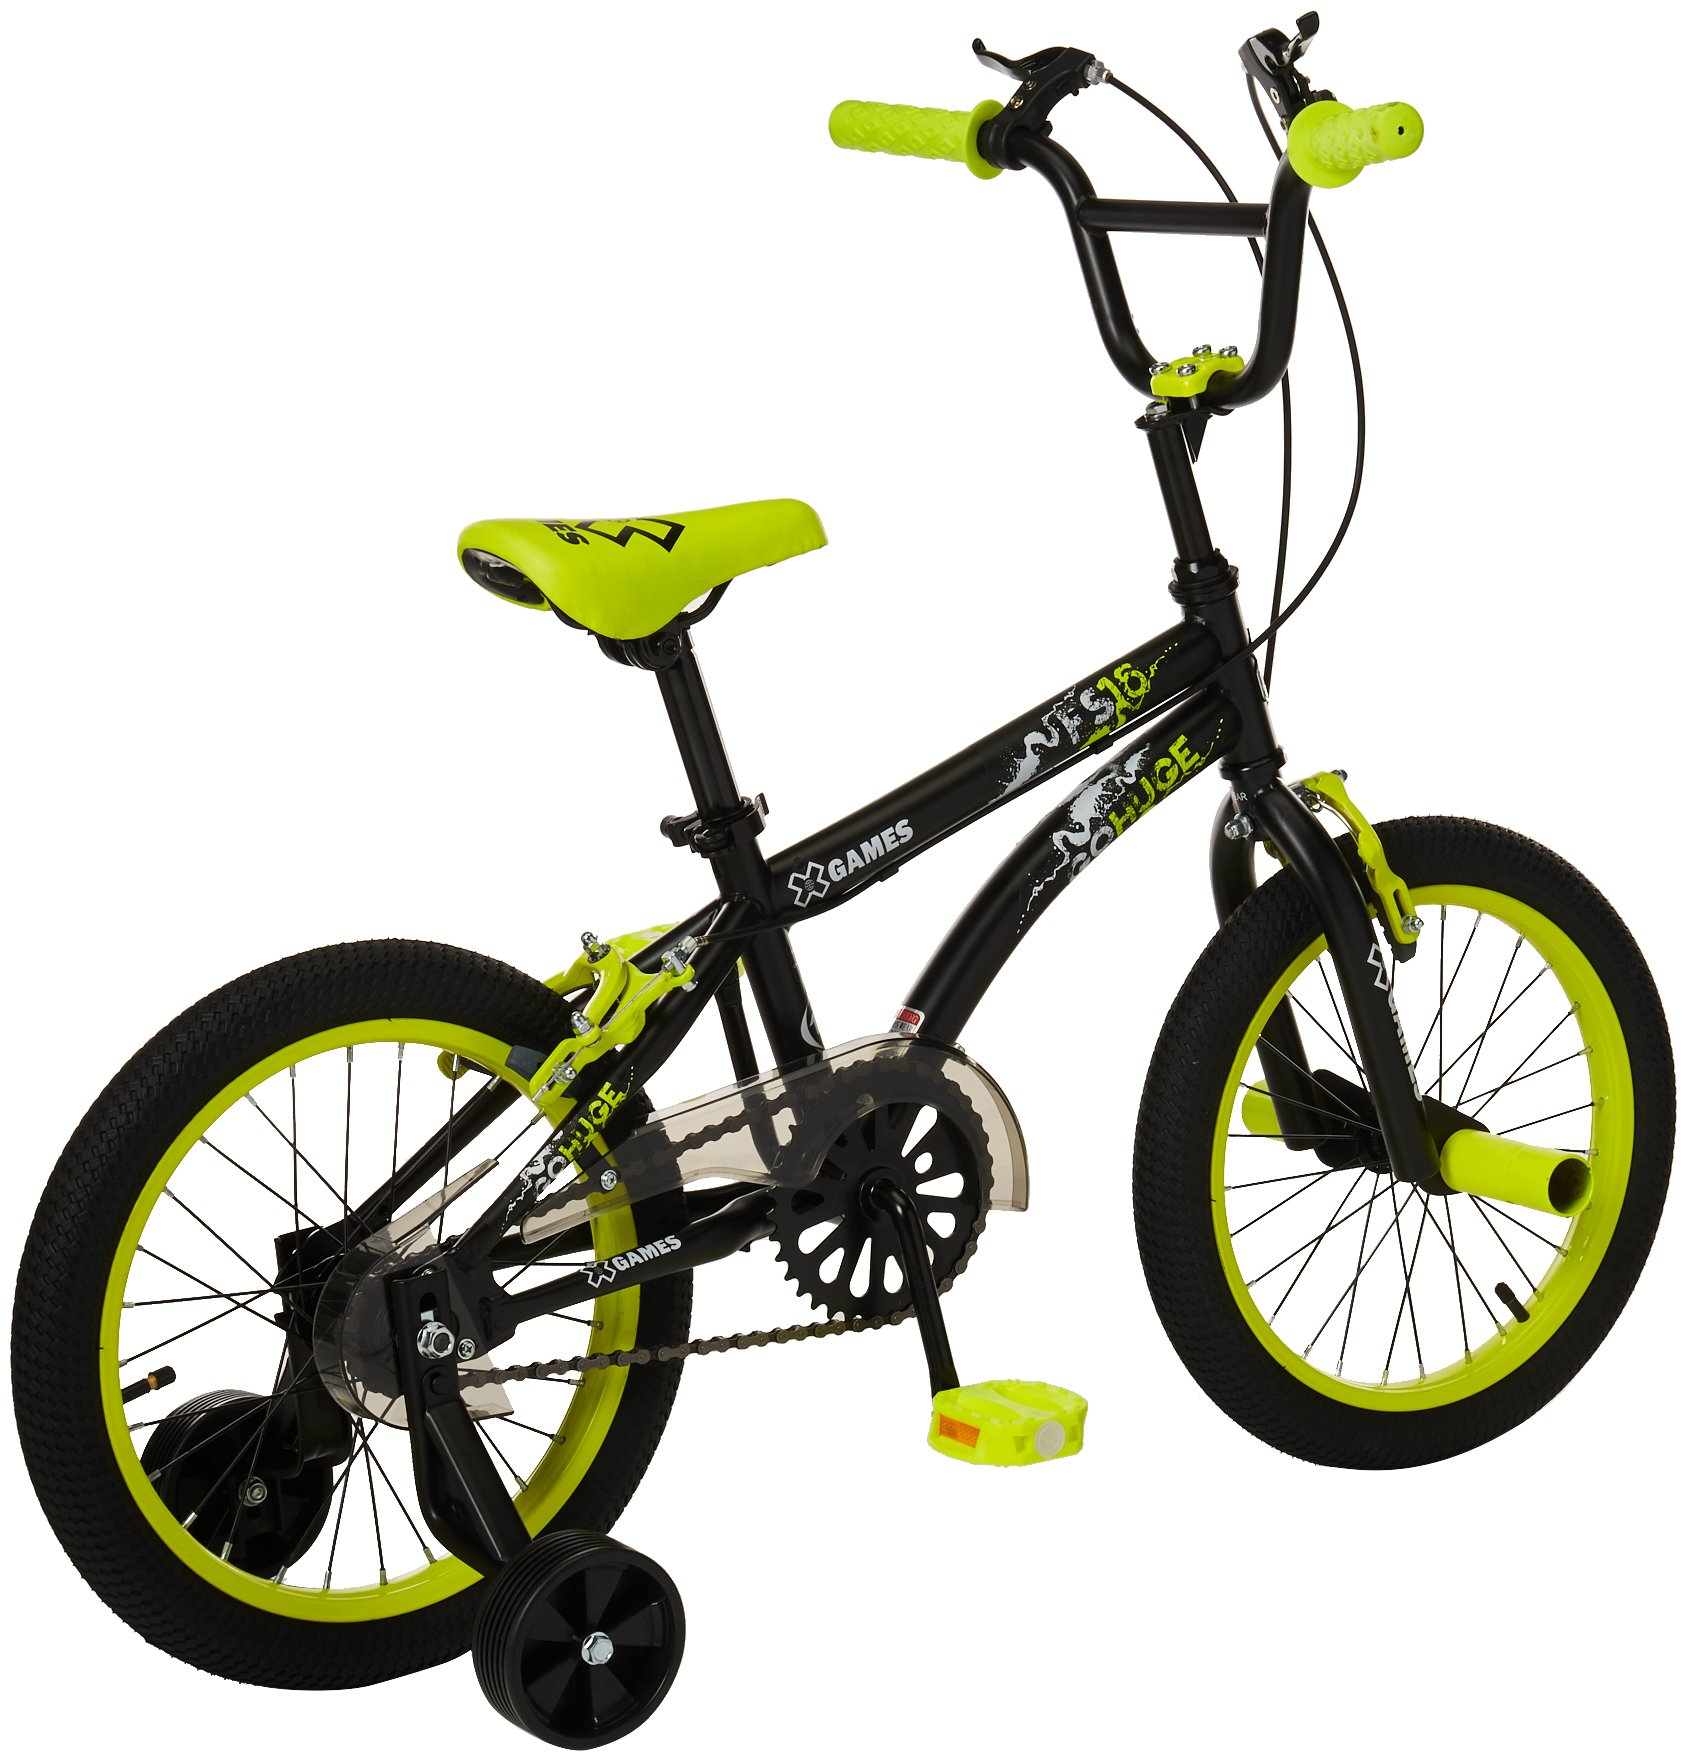 X-Games FS-16 BMX Bike | Mountain Bikes| Bike Parts| Bike